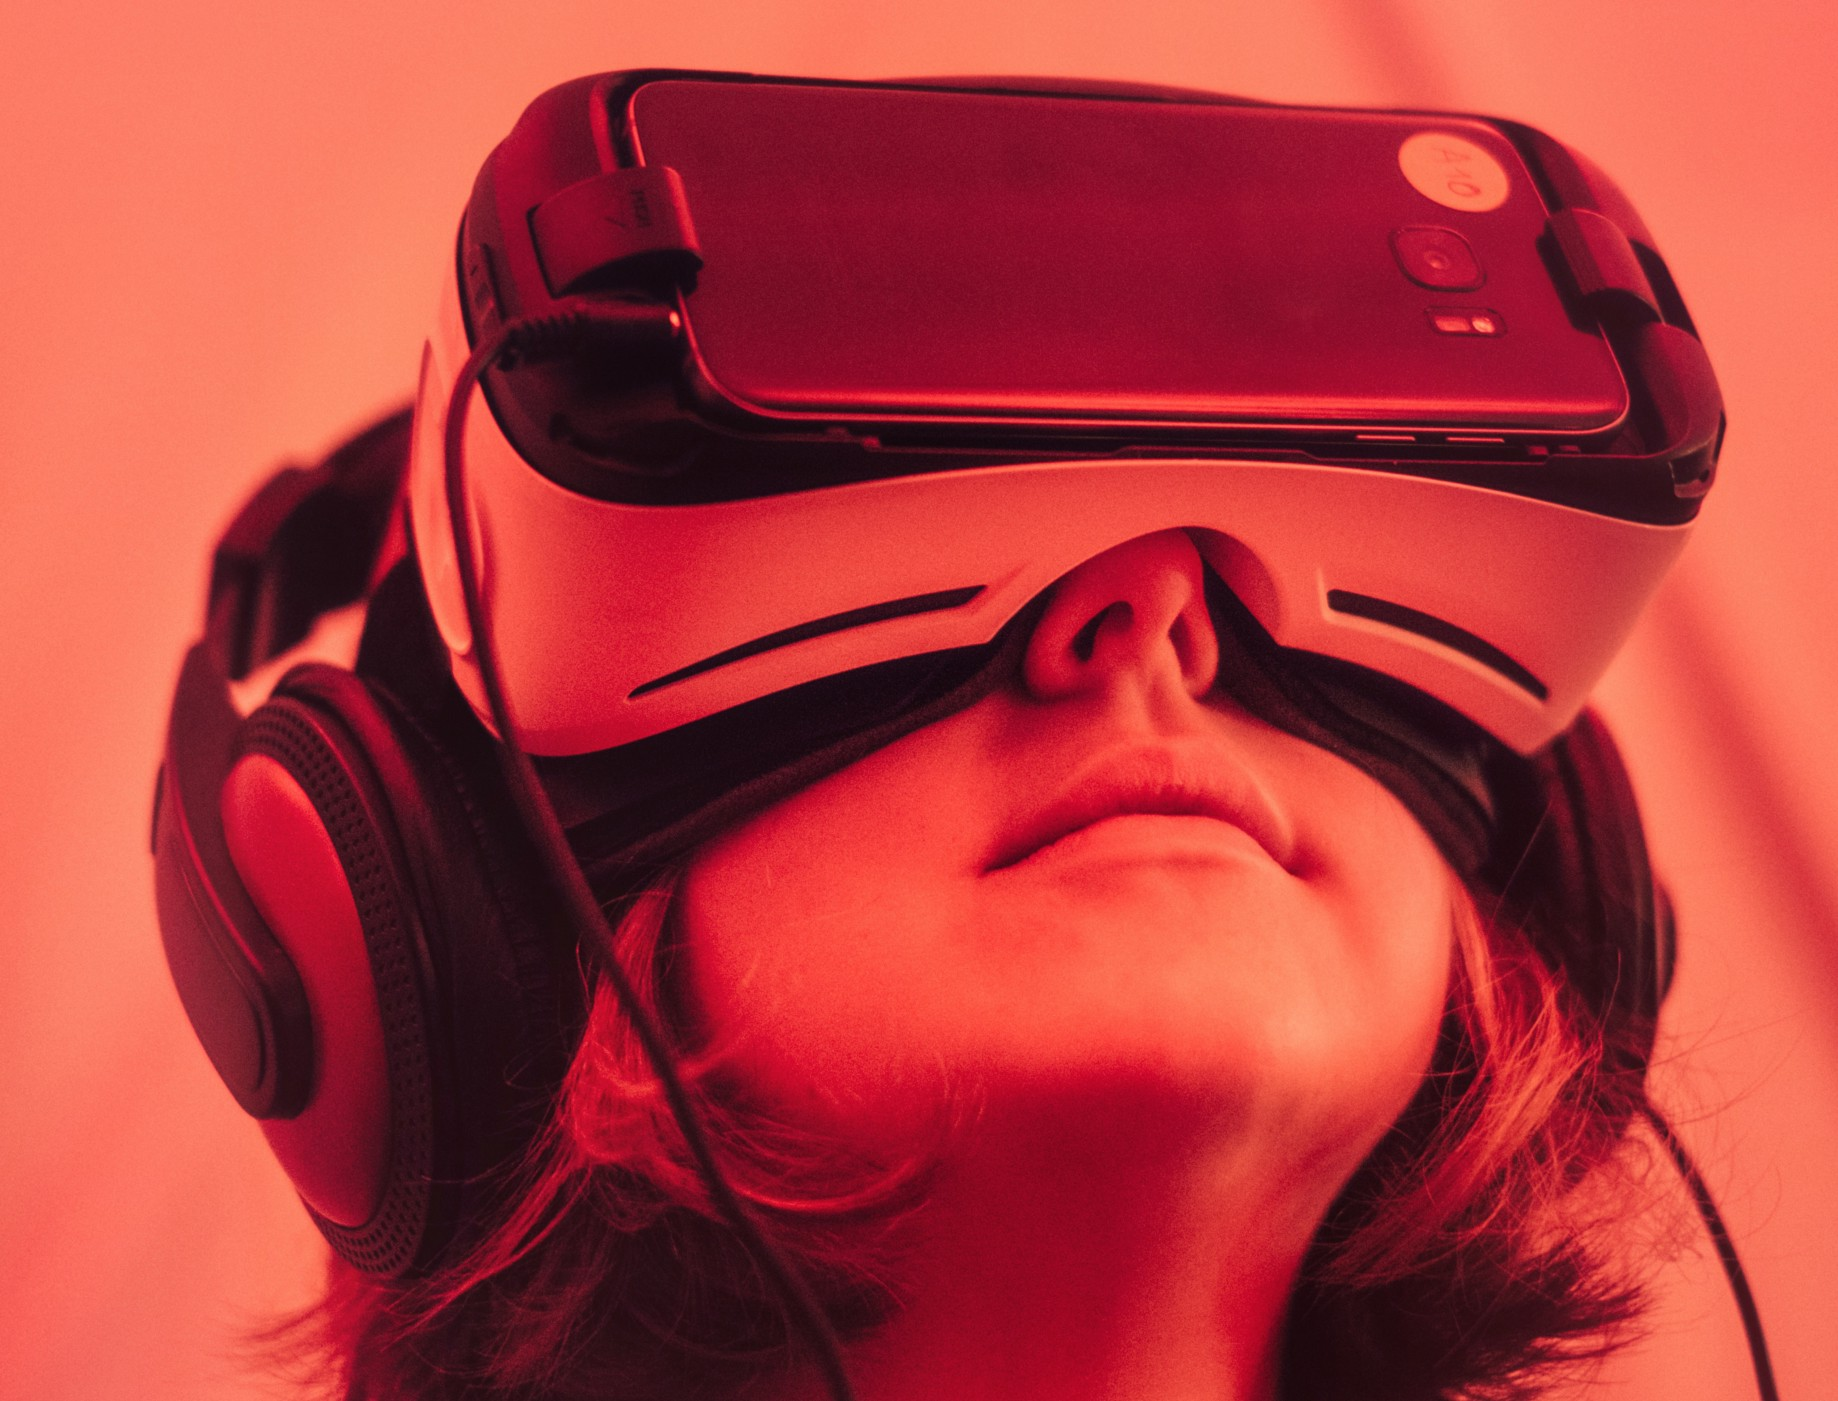 3 Virtual Reality Novels You Should Read - The Writing Cooperative